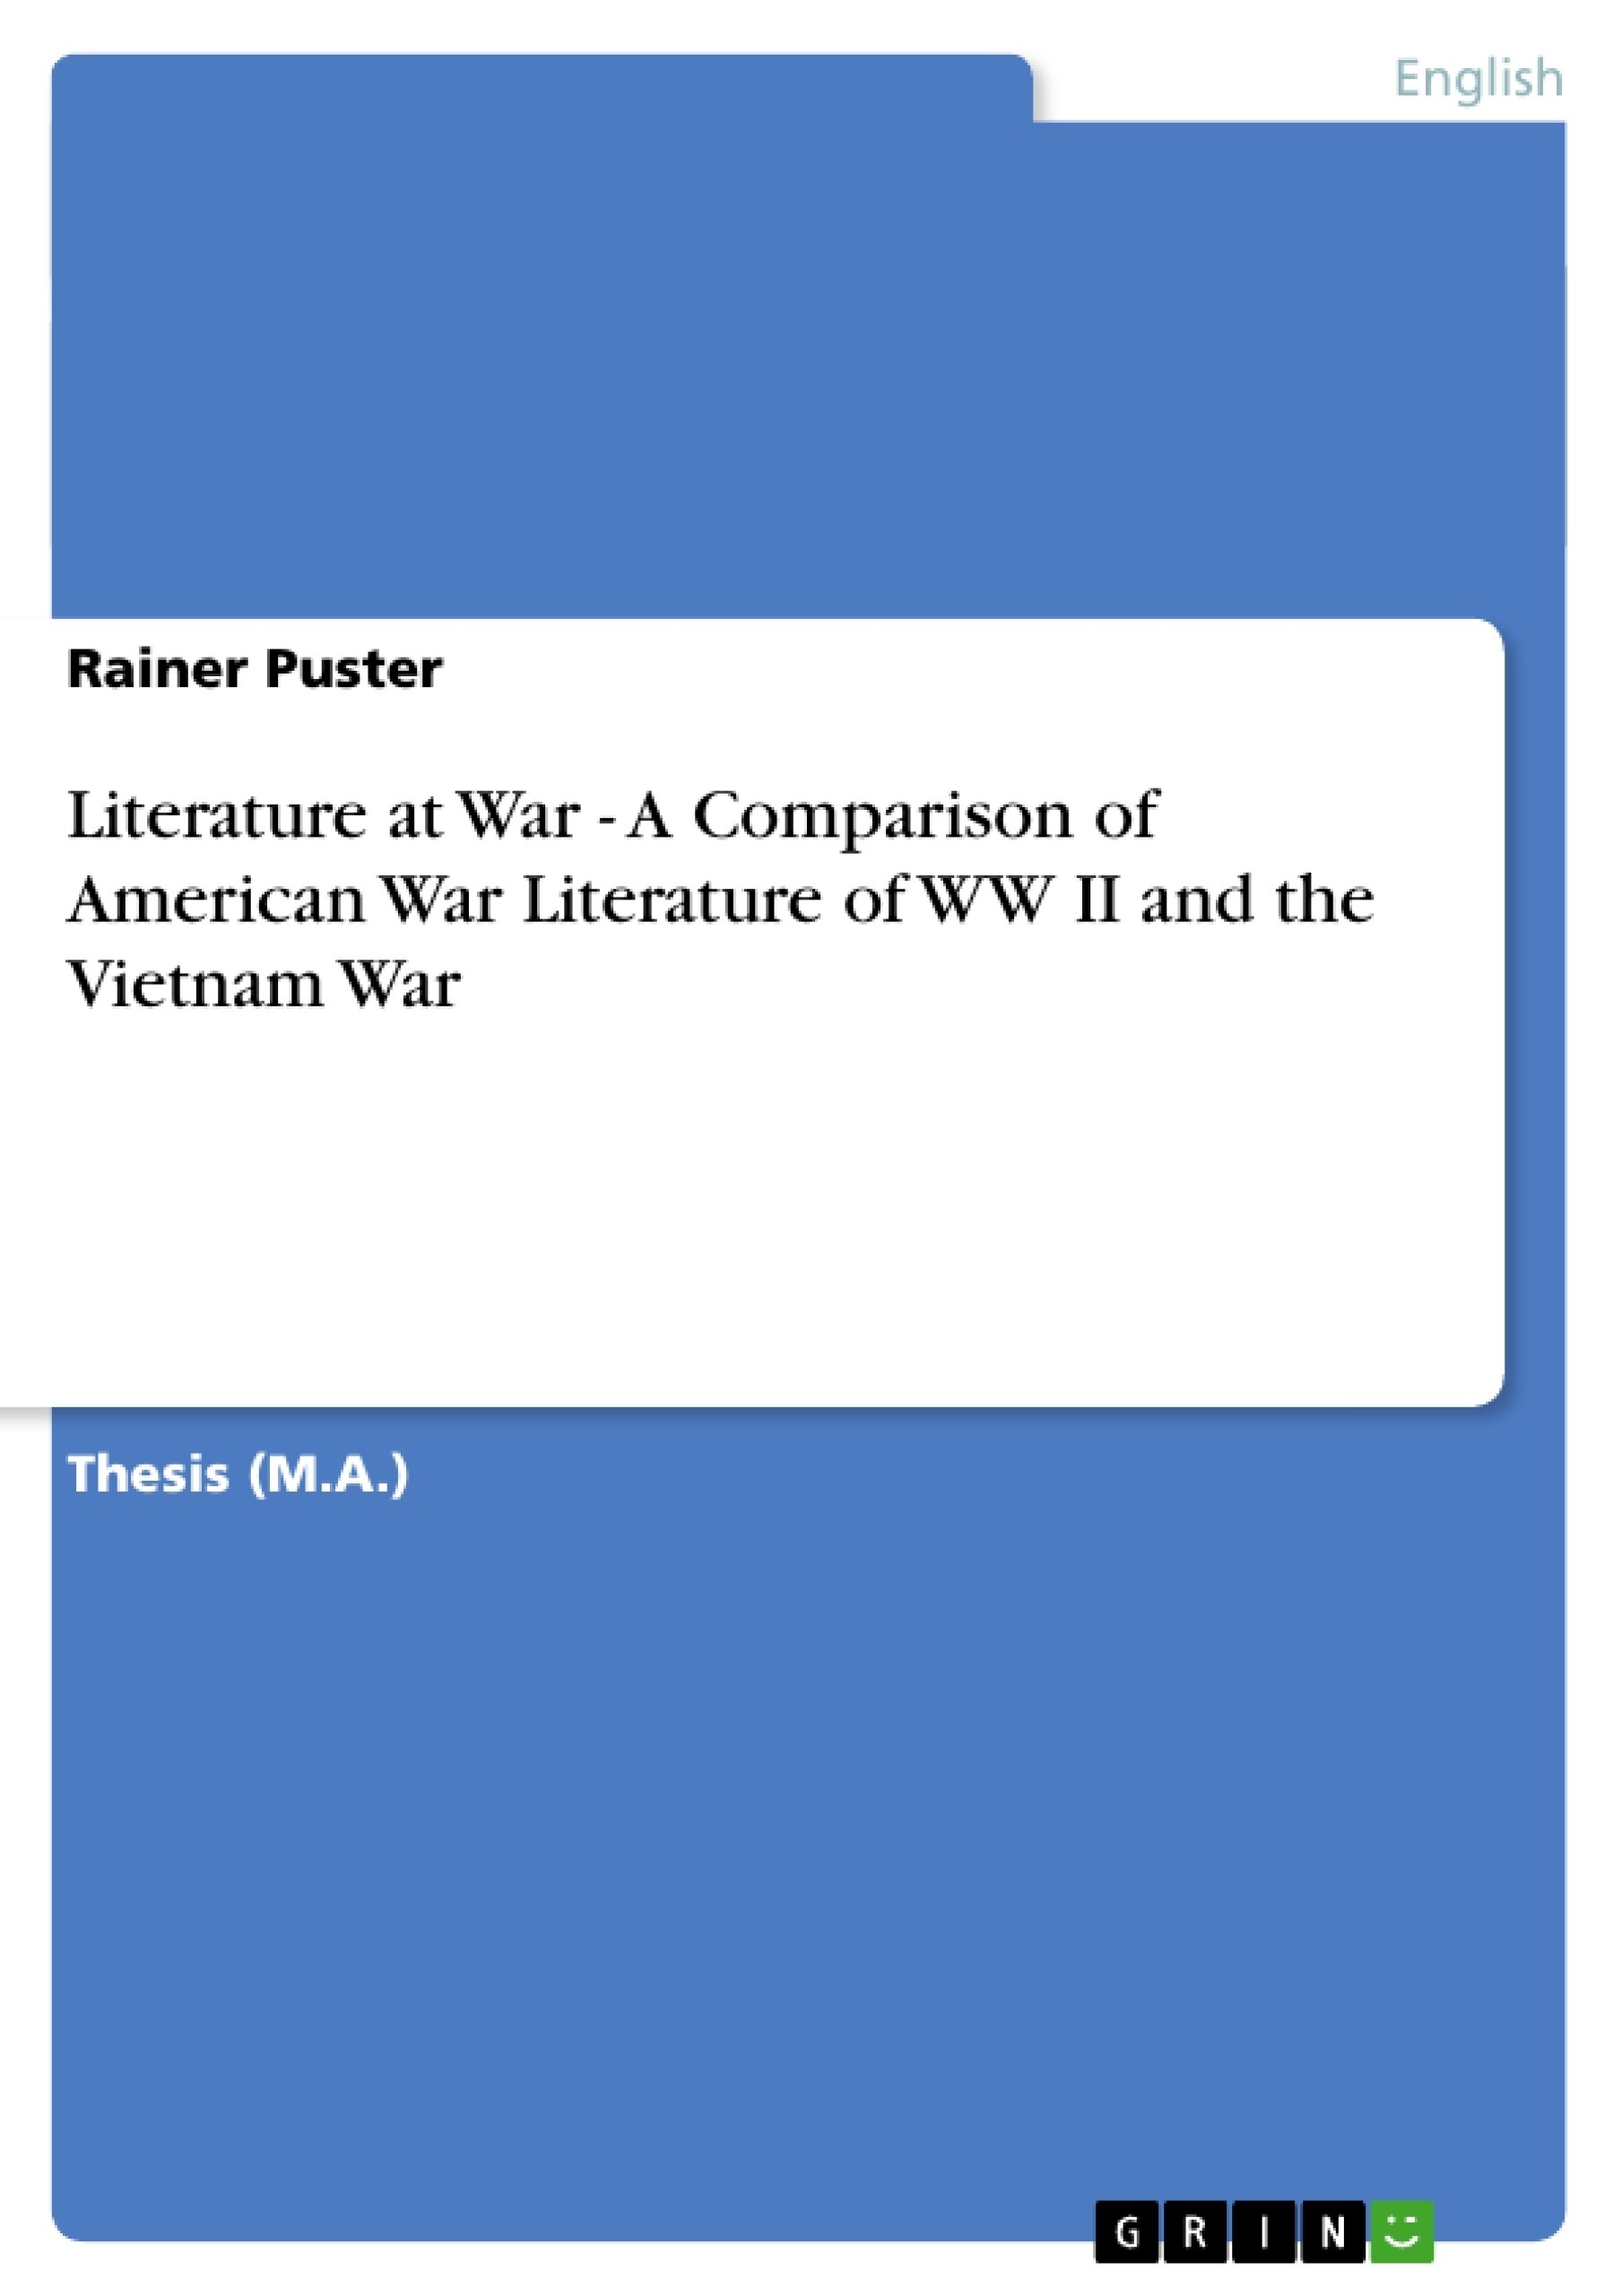 Title: Literature at War  -  A Comparison of American War Literature of WW II and the Vietnam War